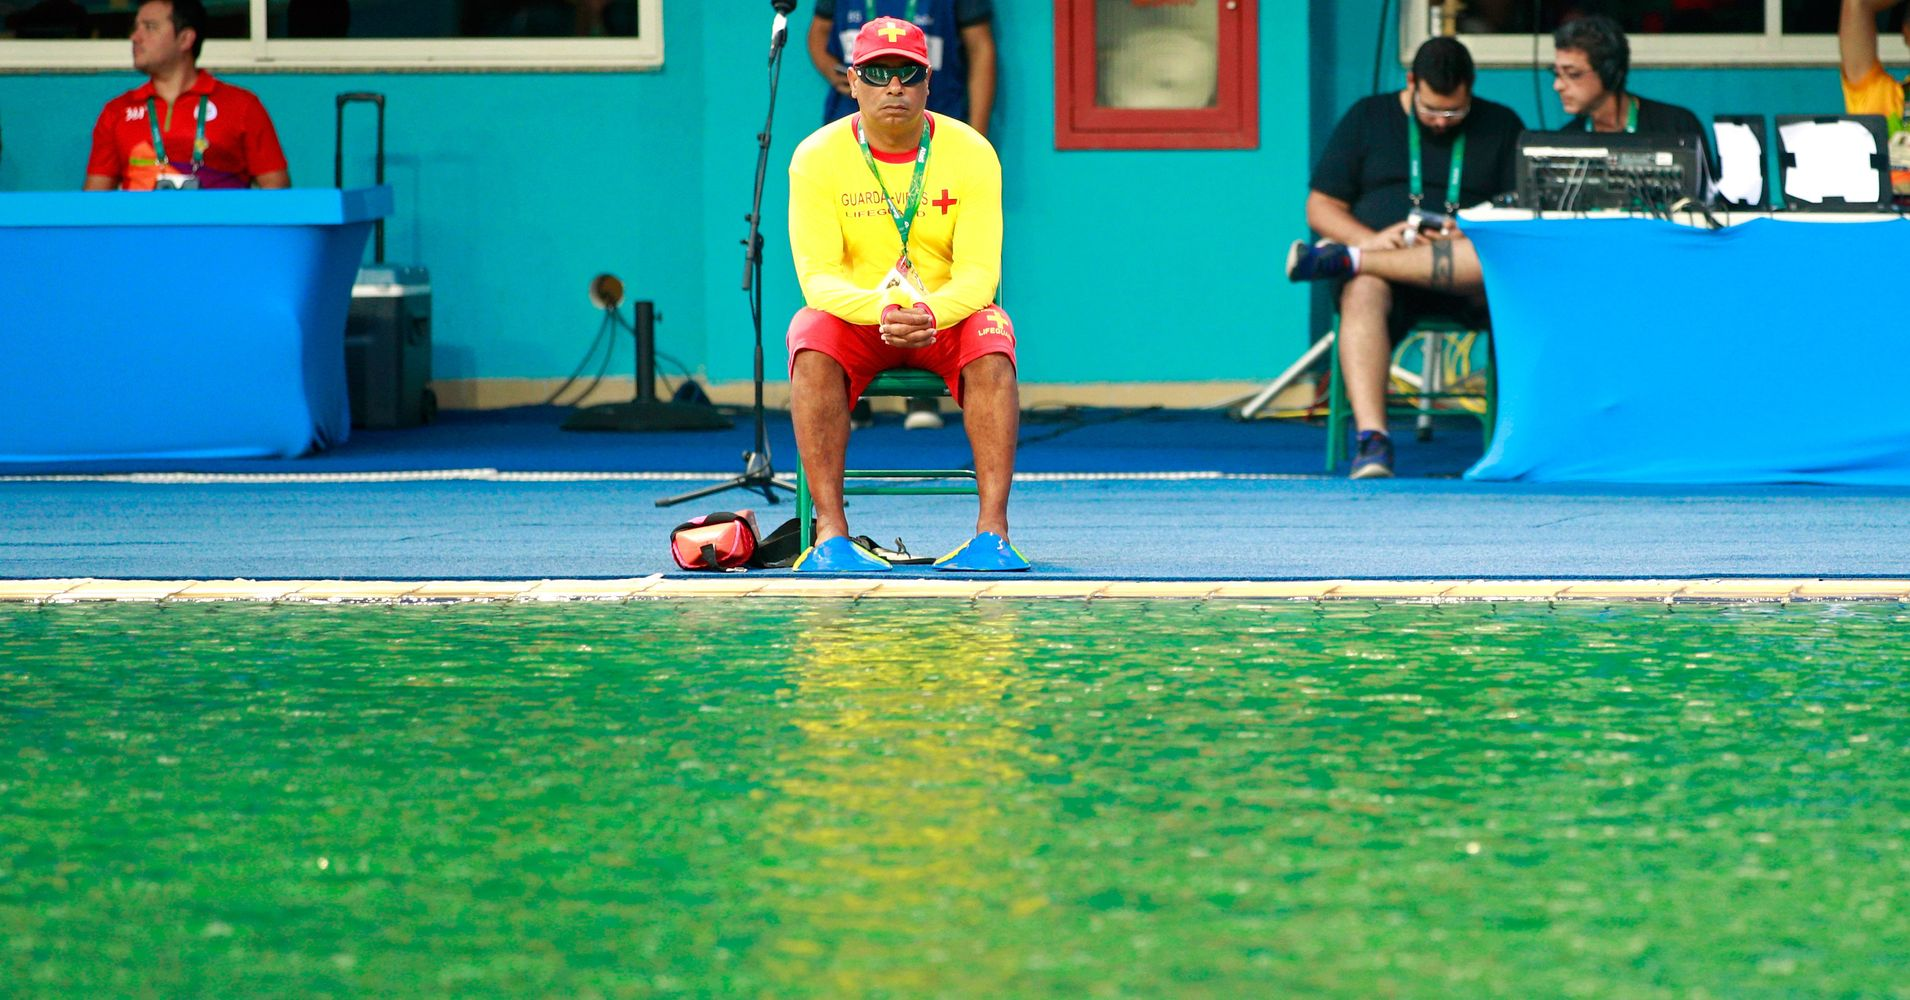 So Someone Dumped 160 Liters Of Hydrogen Peroxide In 2 Olympic Pools Huffpost